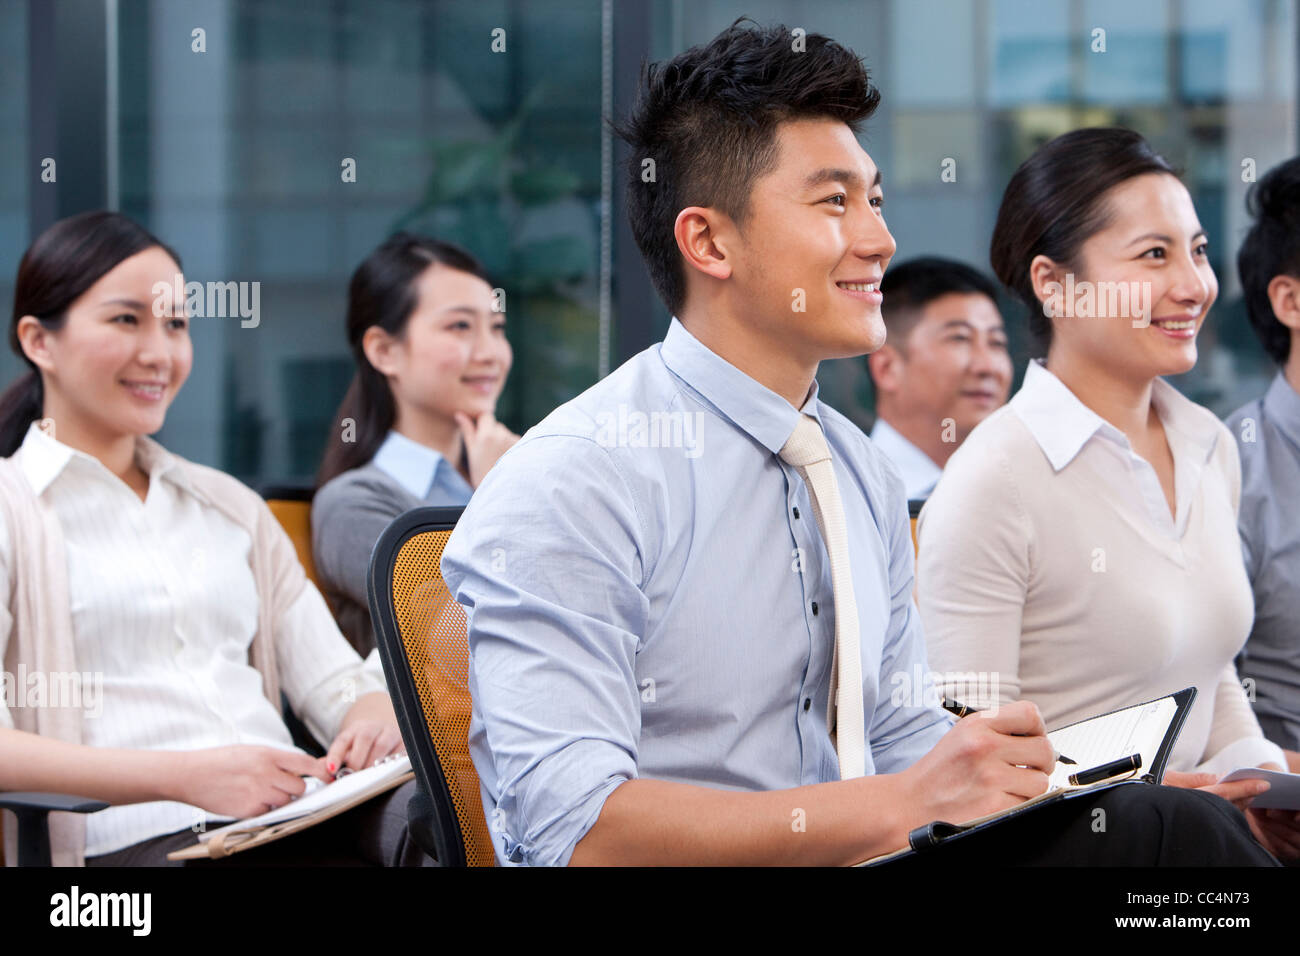 Businesspeople happily listening to a lecture - Stock Image